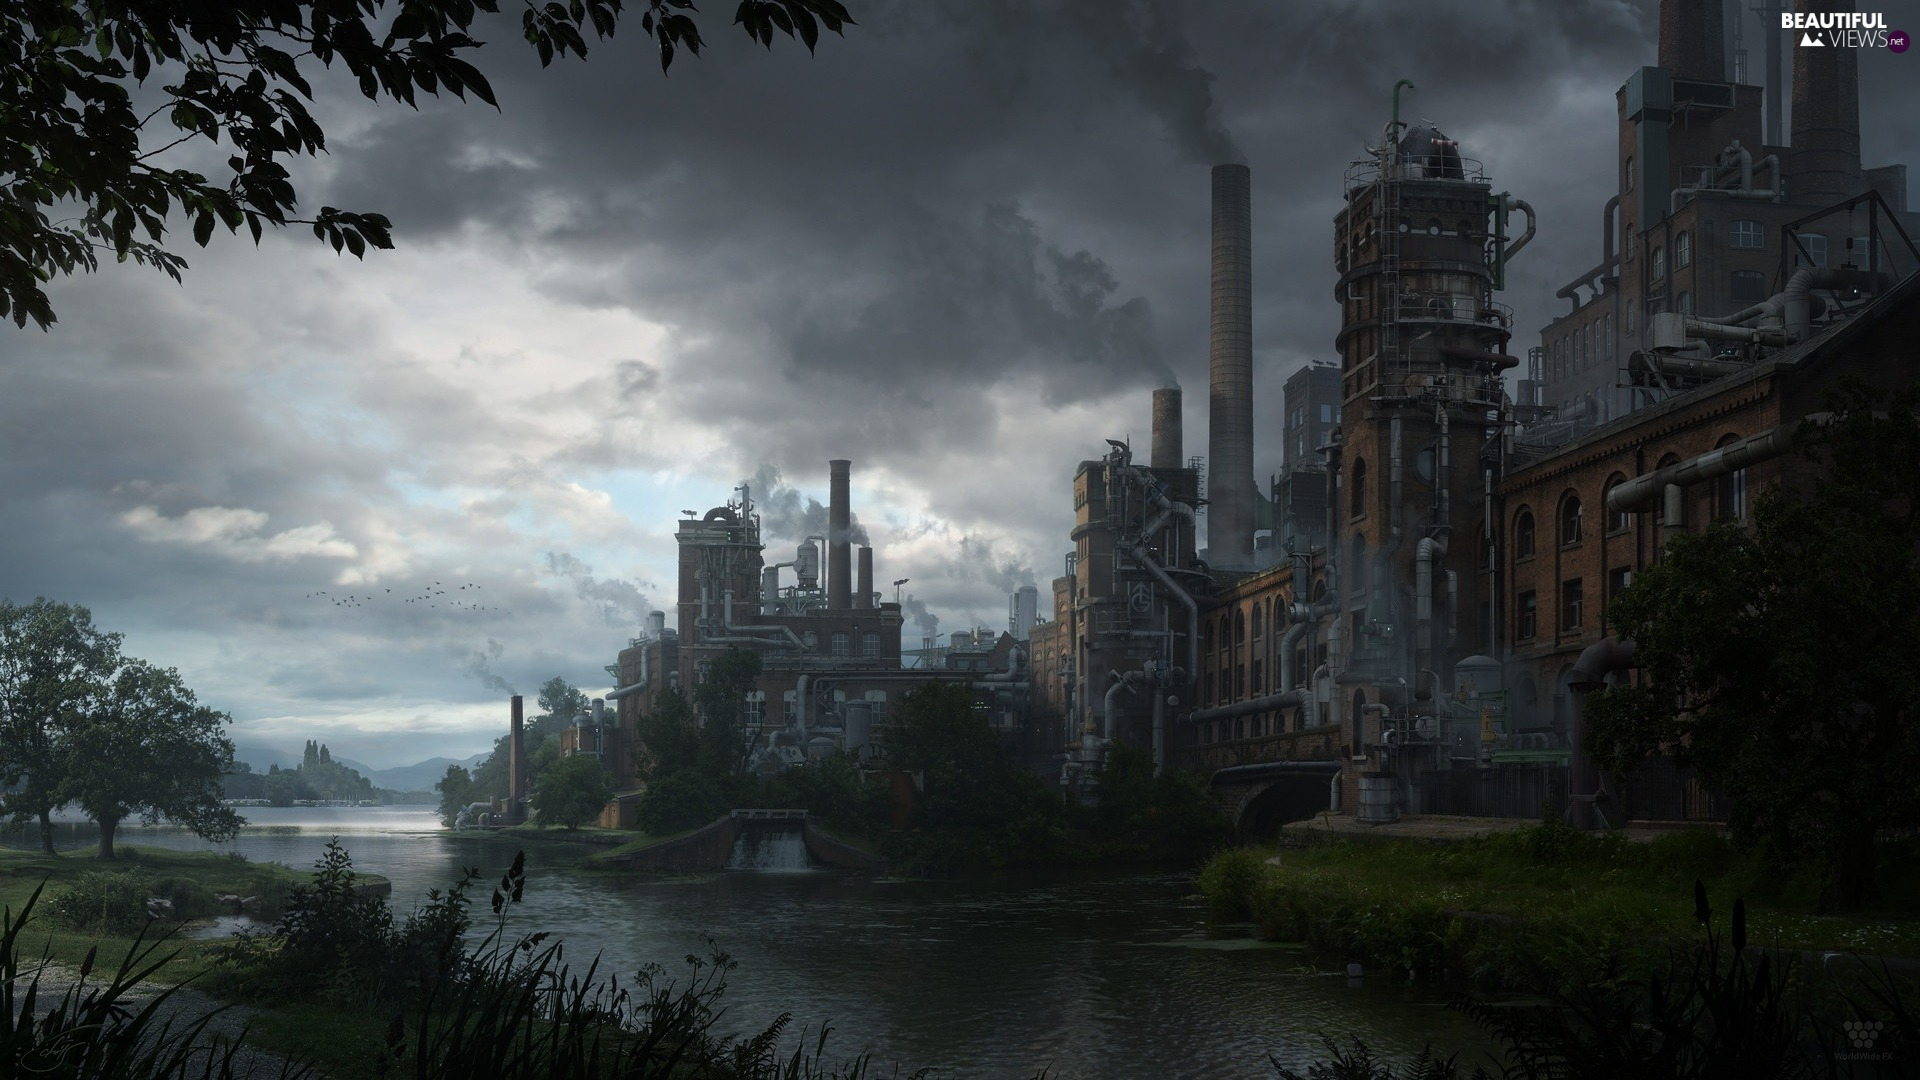 factory, industry, Matte painting, Chimneys, clouds, buildings, River, Sky